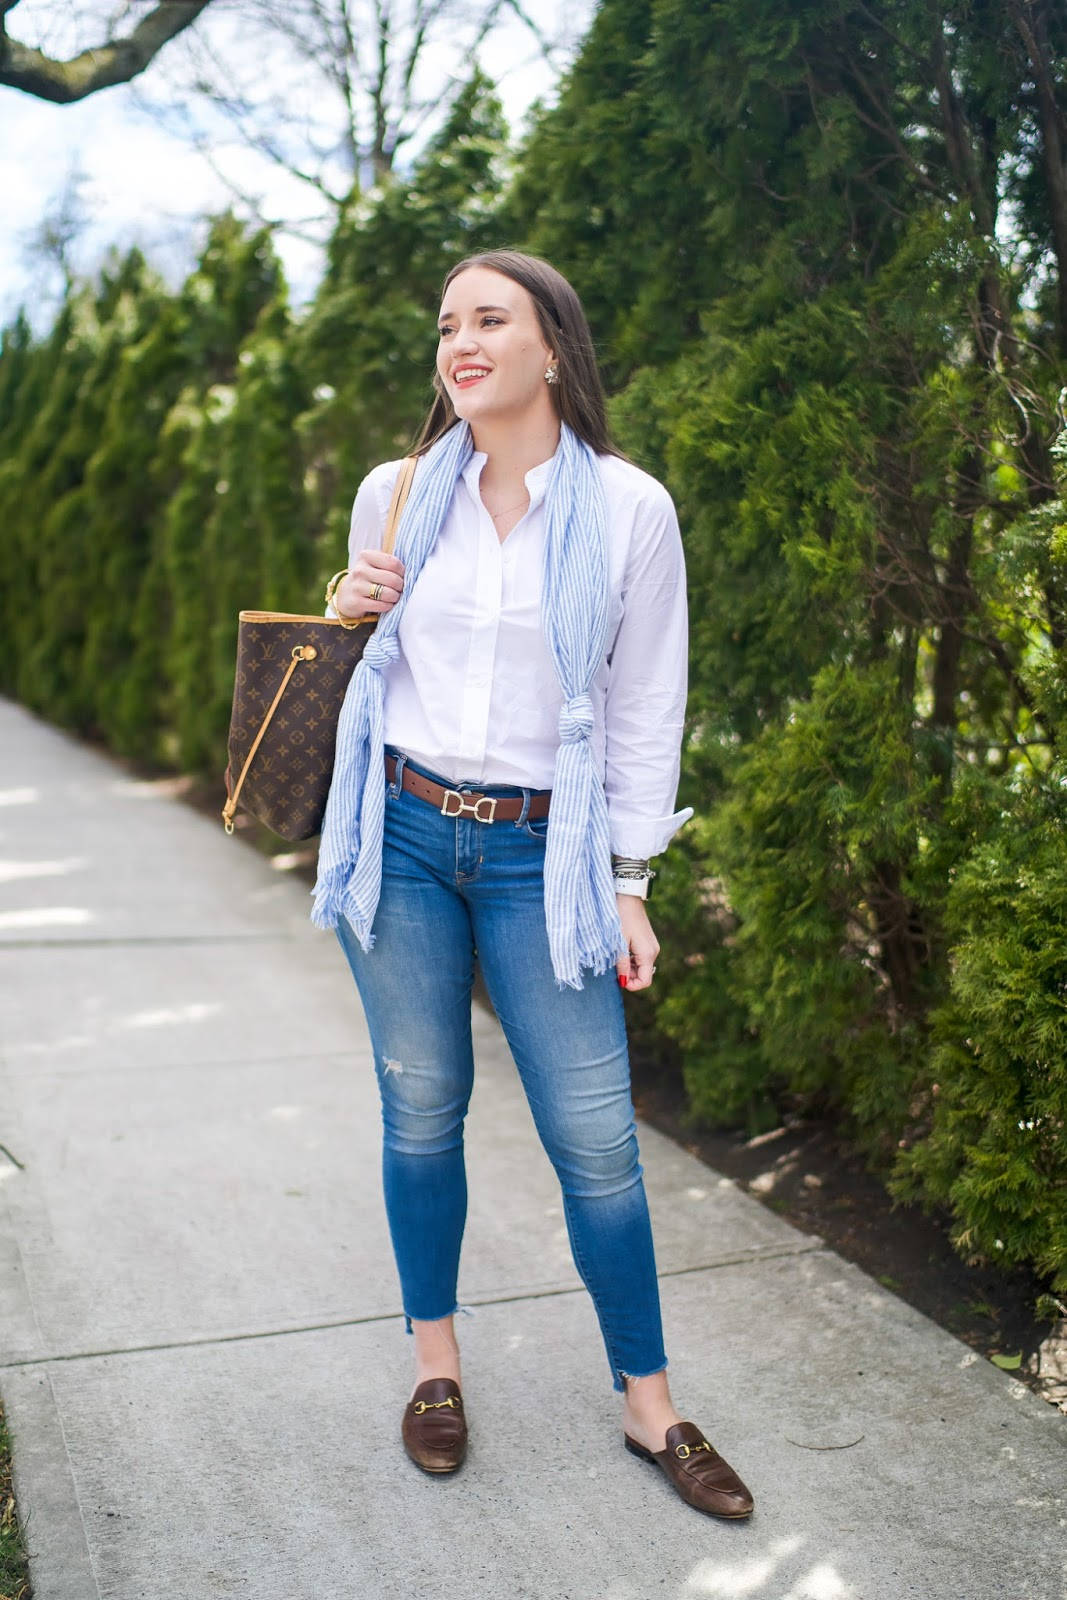 J Crew Stretch Perfect Bodysuit Review by popular New York fashion blogger Covering the Bases